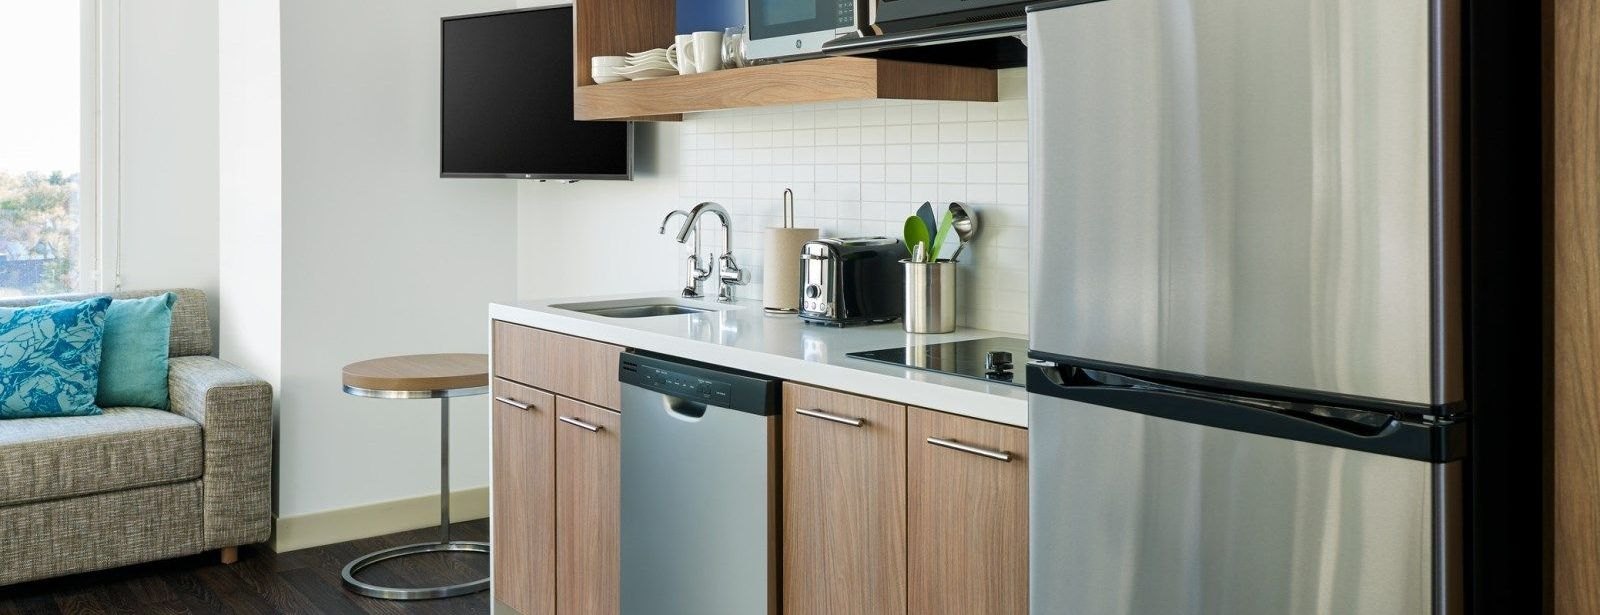 Redmond Accommodations - Studio Kitchen